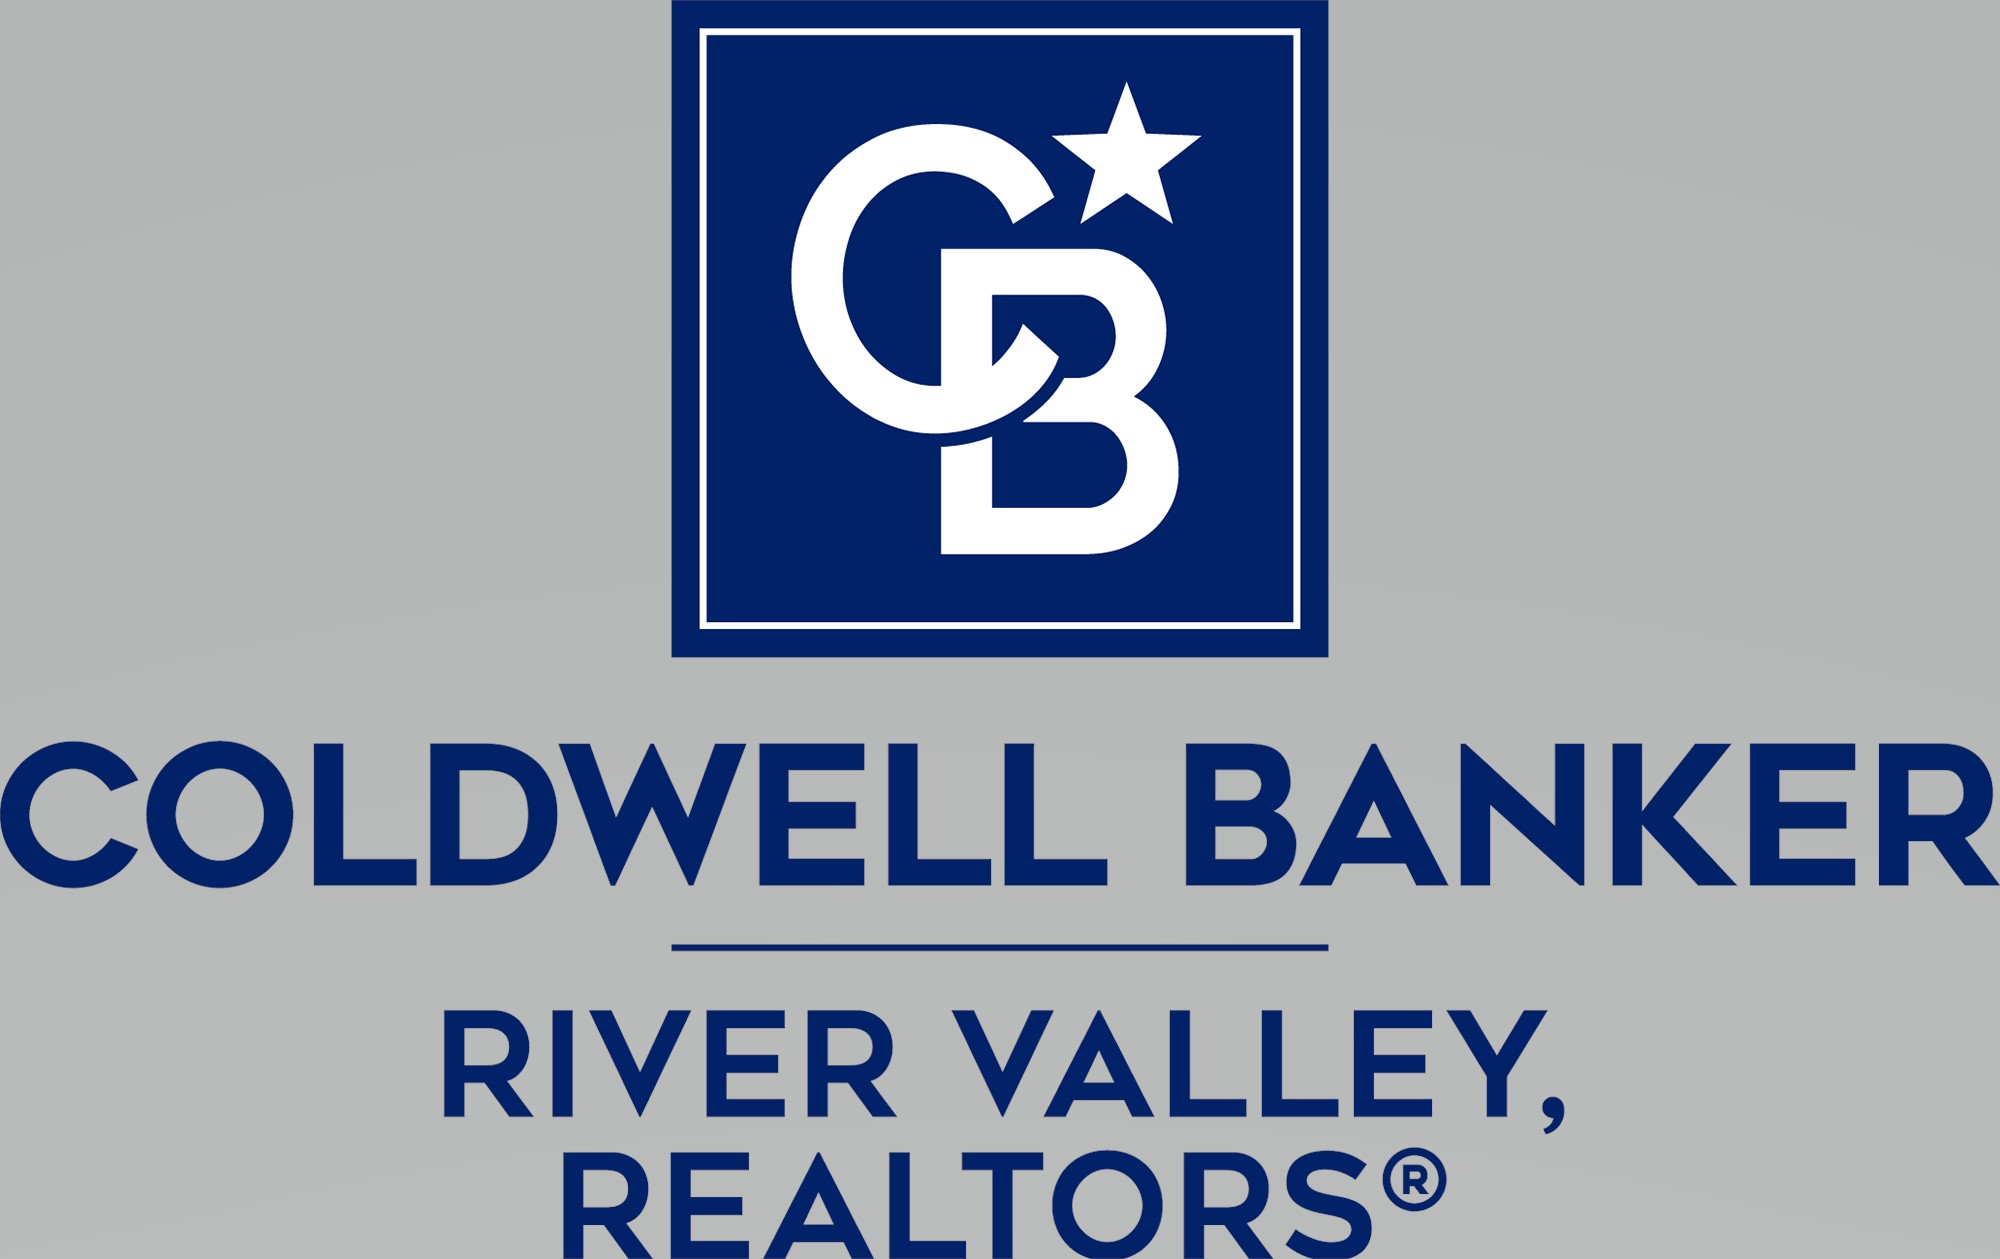 Brenda Scott - Coldwell Banker River Valley Realtors